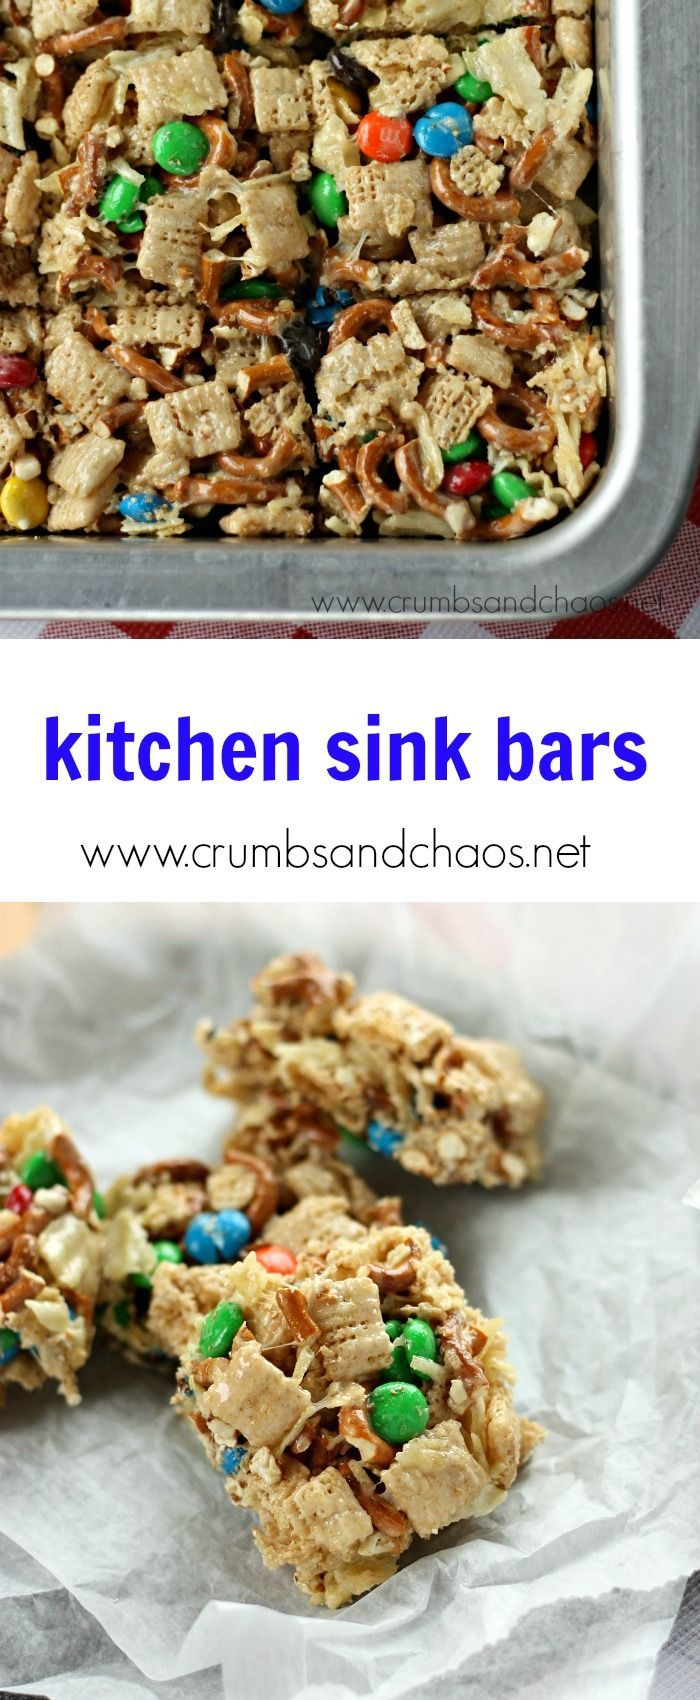 Sink Bars Sweet and salty, Kitchen Sink Bars are an easy no bake treat that is irresistible and sure to be a crowd favorite! via @crumbsandchaosSweet and salty, Kitchen Sink Bars are an easy no bake treat that is irresistible and sure to be a crowd favorite! via @crumbsandchaos